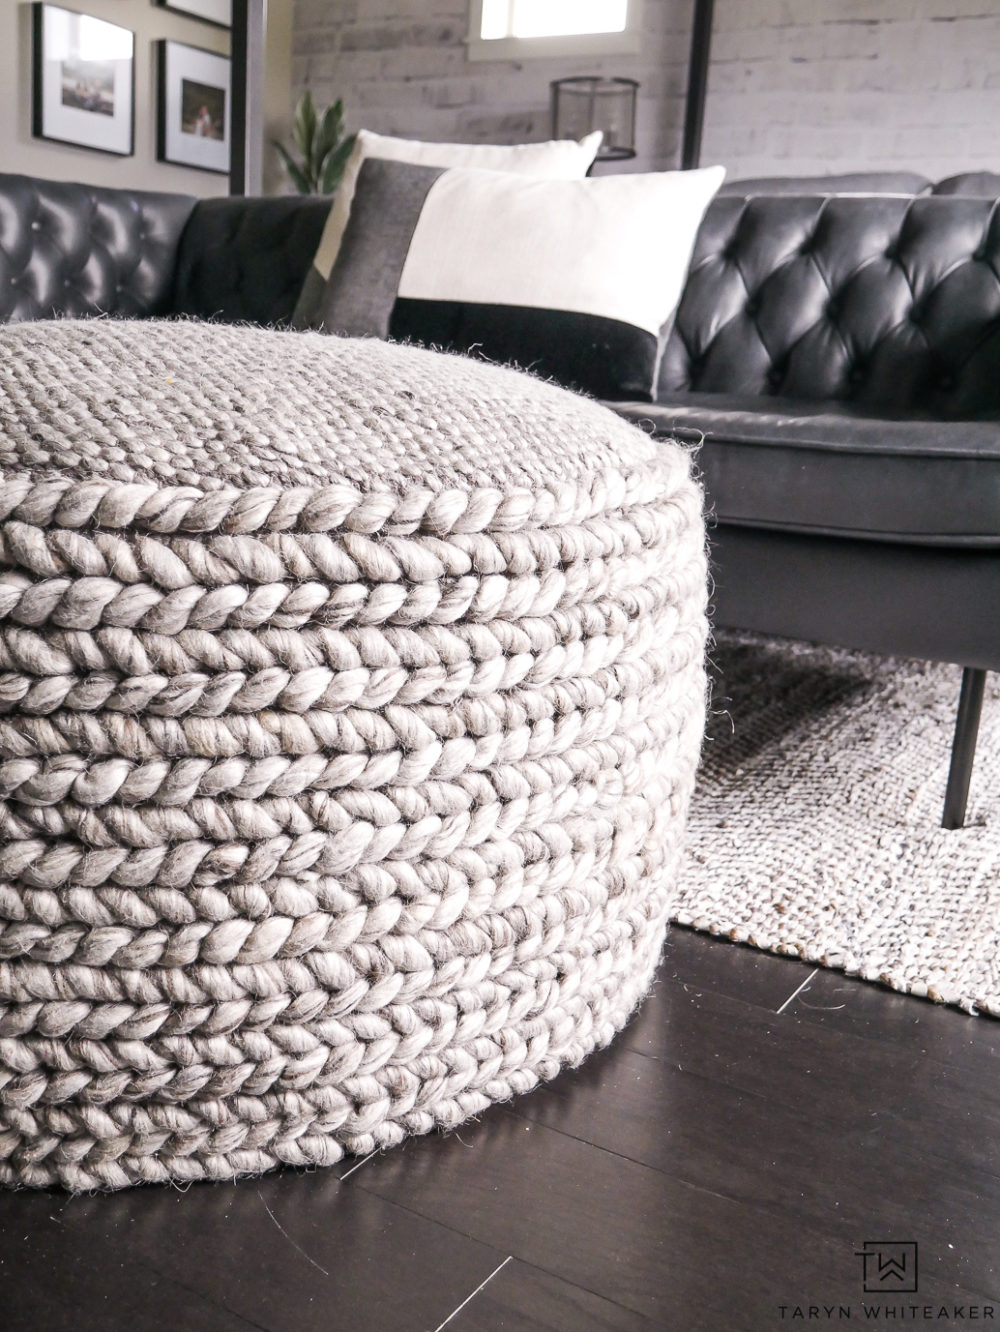 Bring texture and functionality to your space by adding a large woven ottoman ! Love the cozy look and feel.